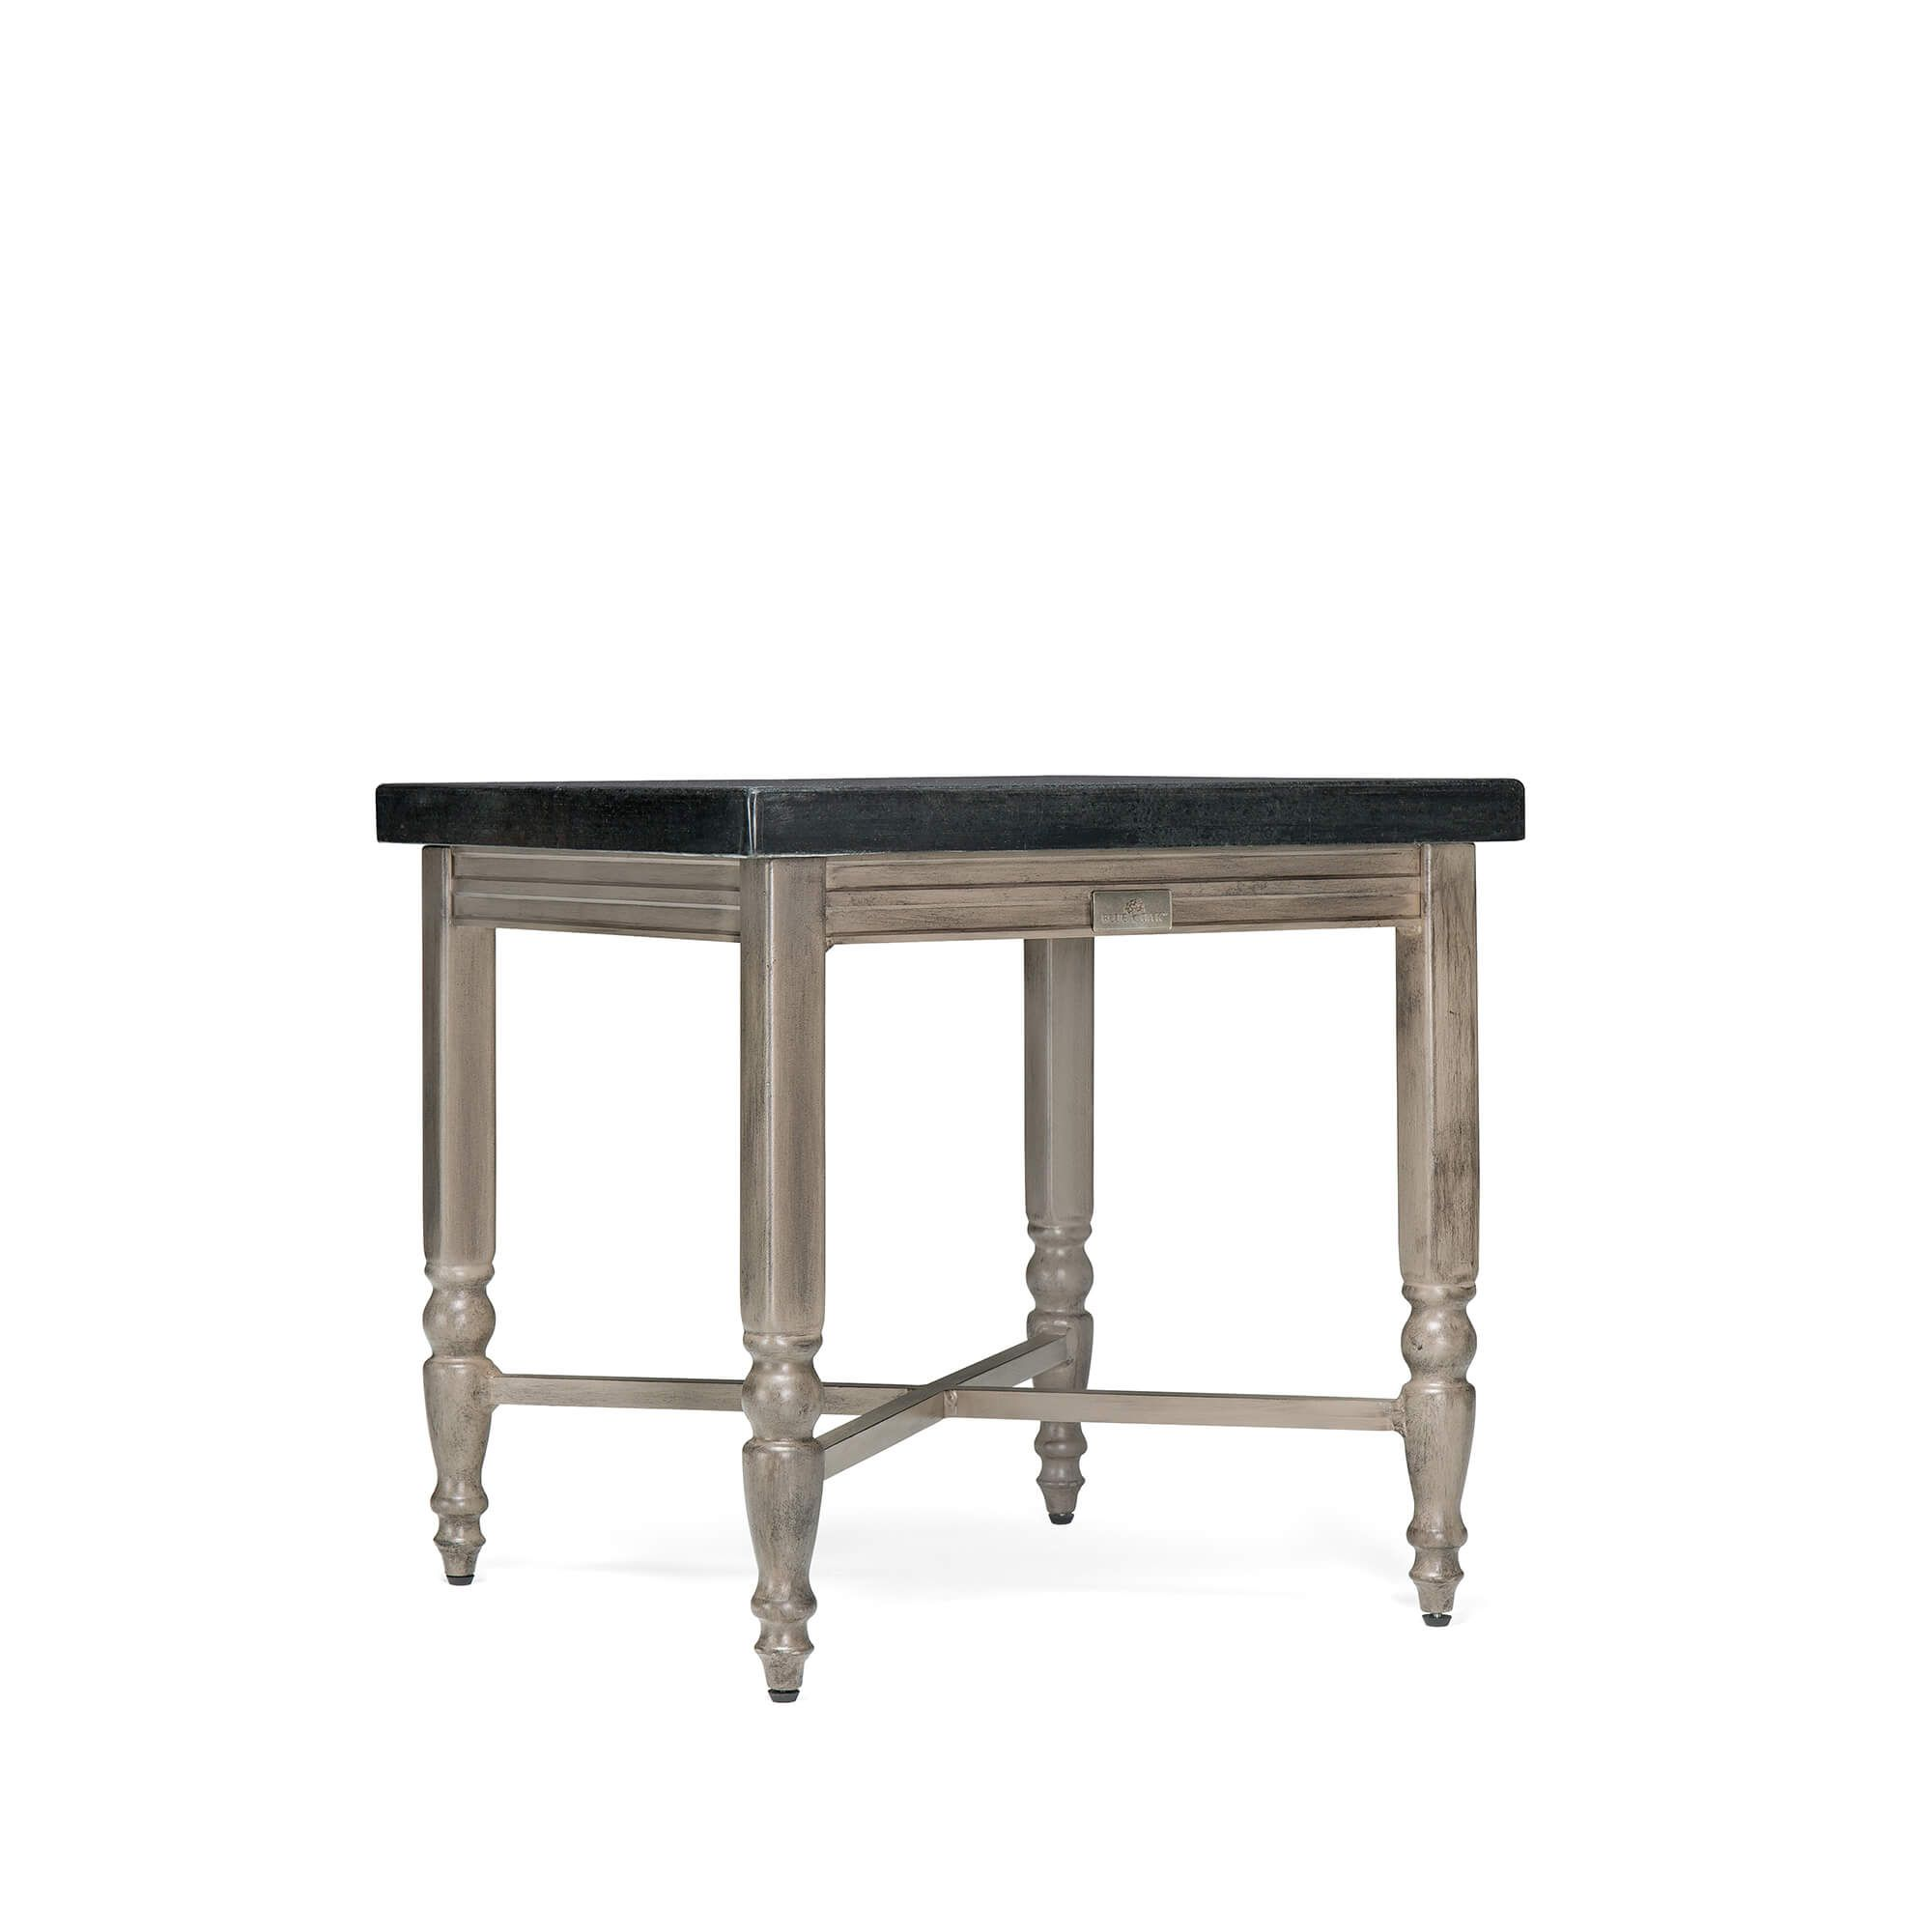 Saylor Outdoor Side Table With Stone Table Top Outdoor Side Table Stone Table Top Aluminum Table